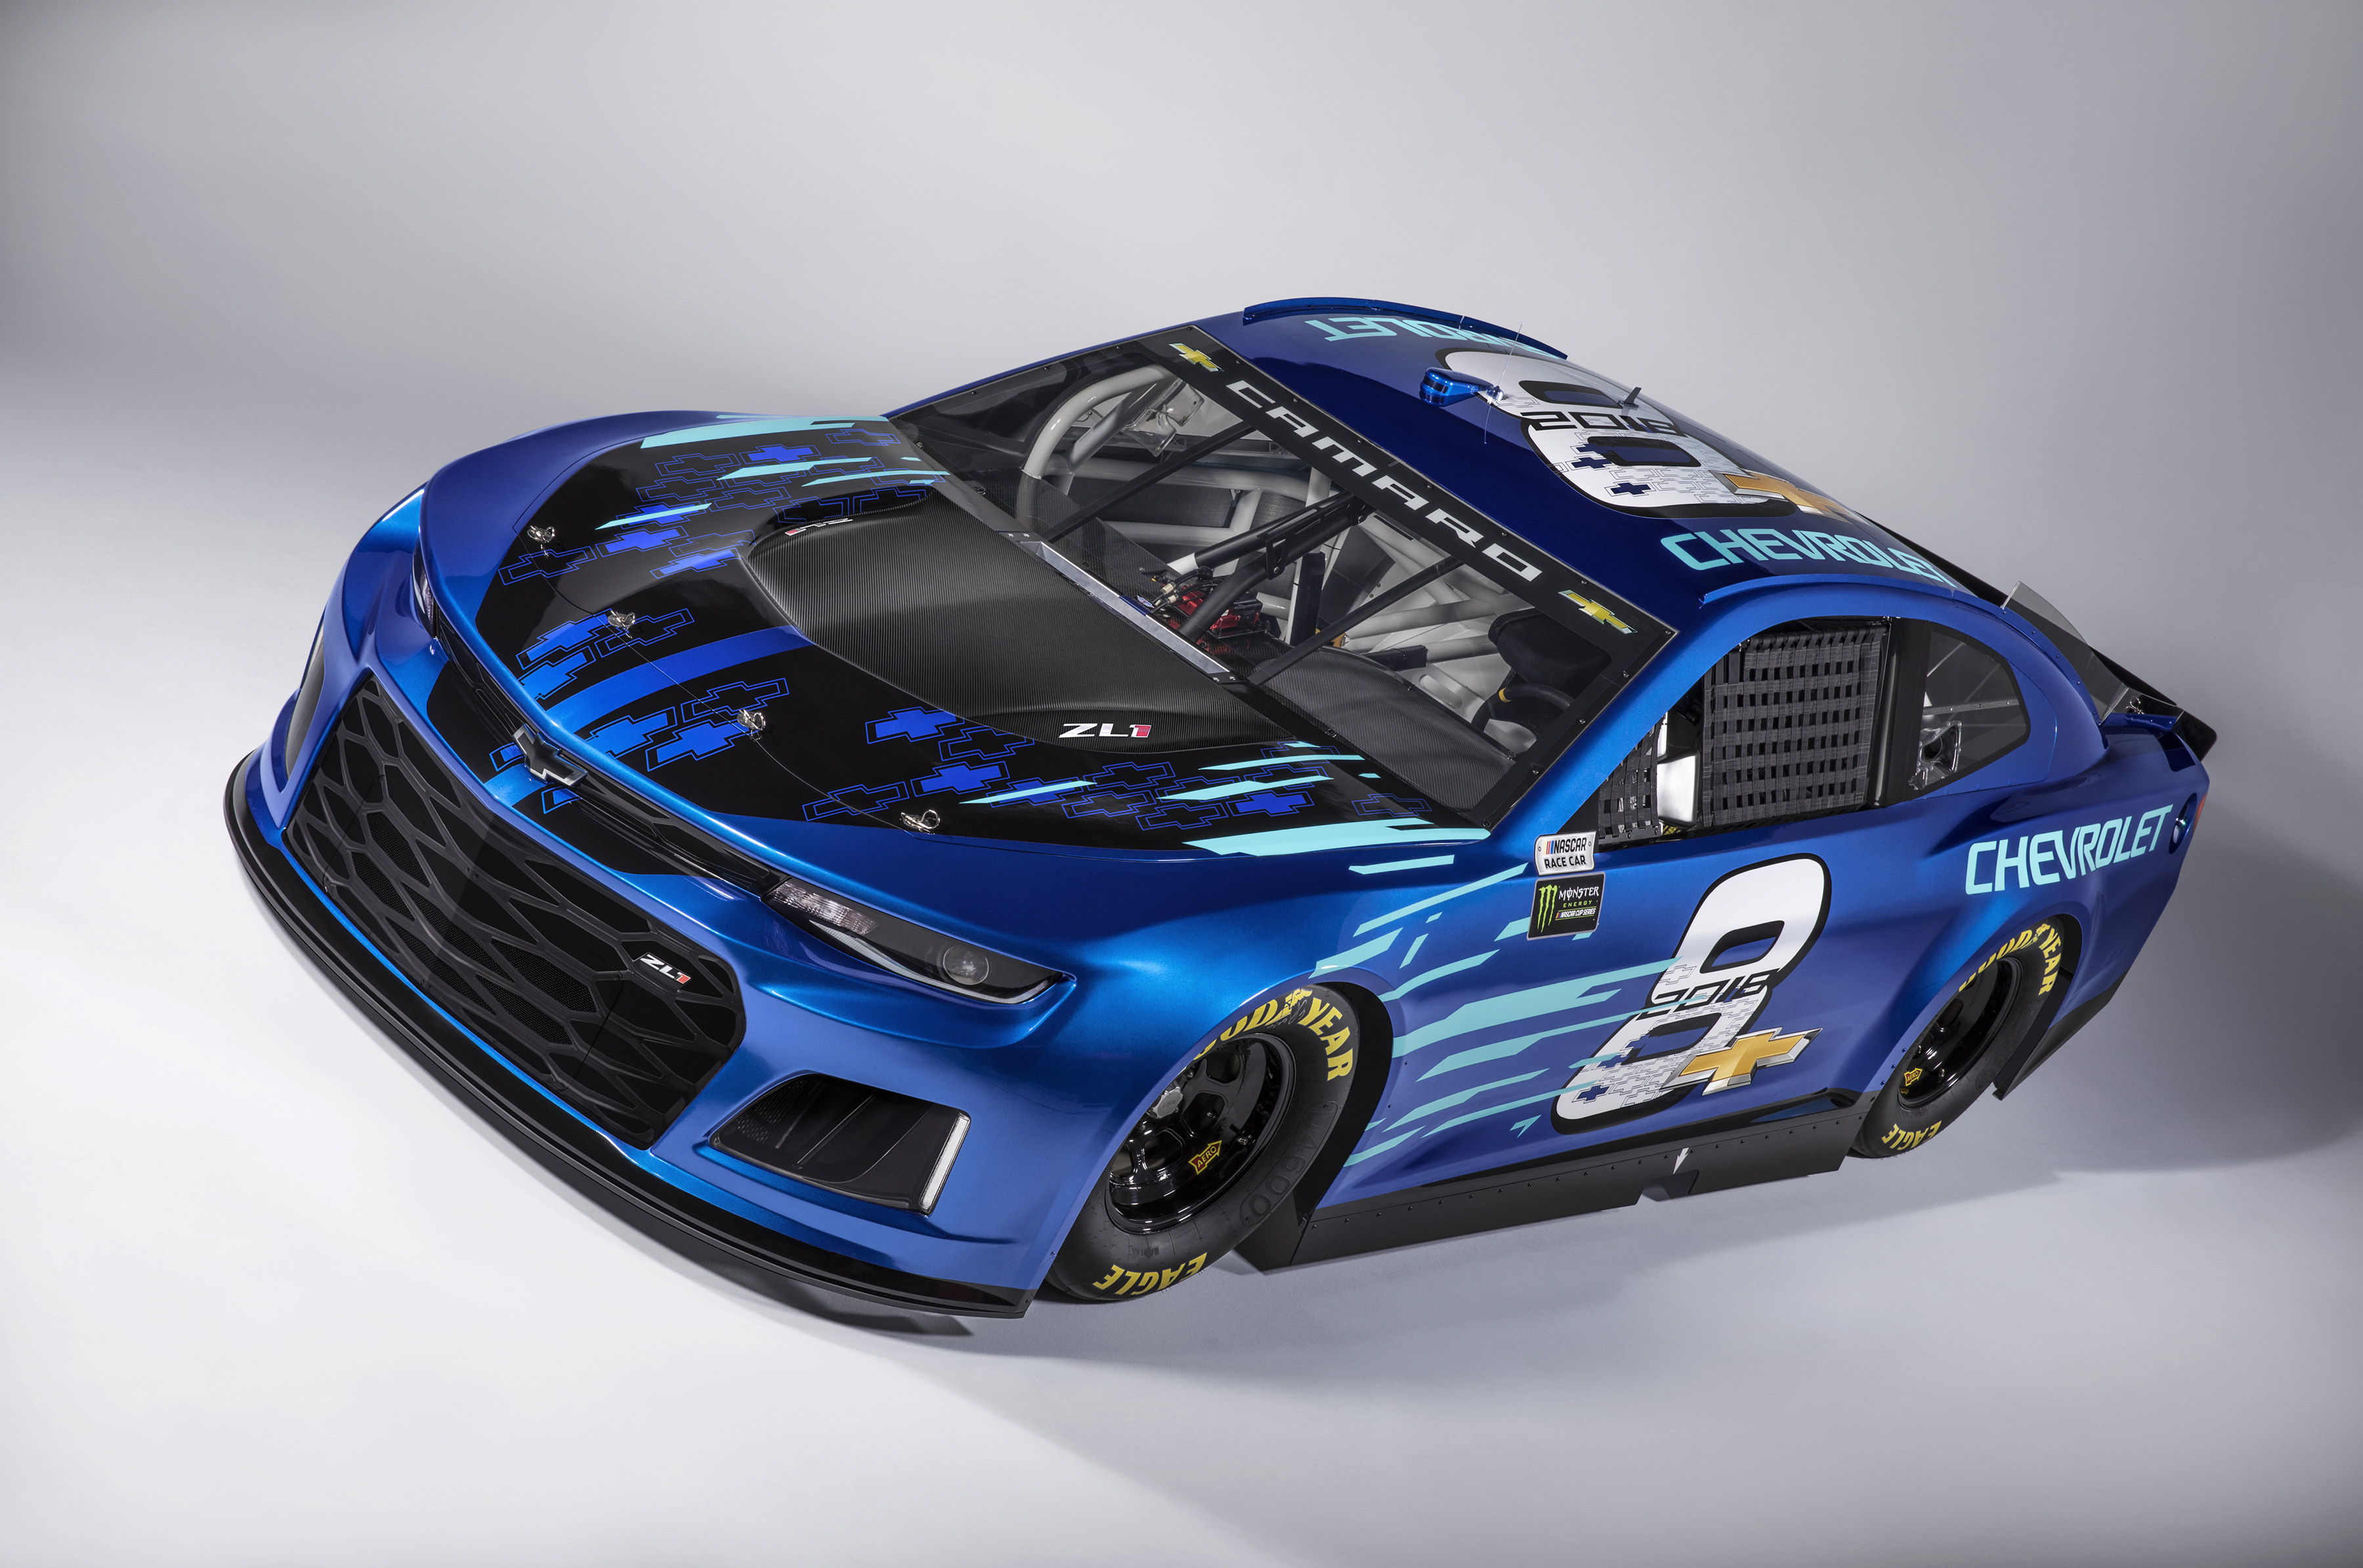 Chevrolet Reveals The 2018 Camaro Zl1 Nascar Cup Race Car